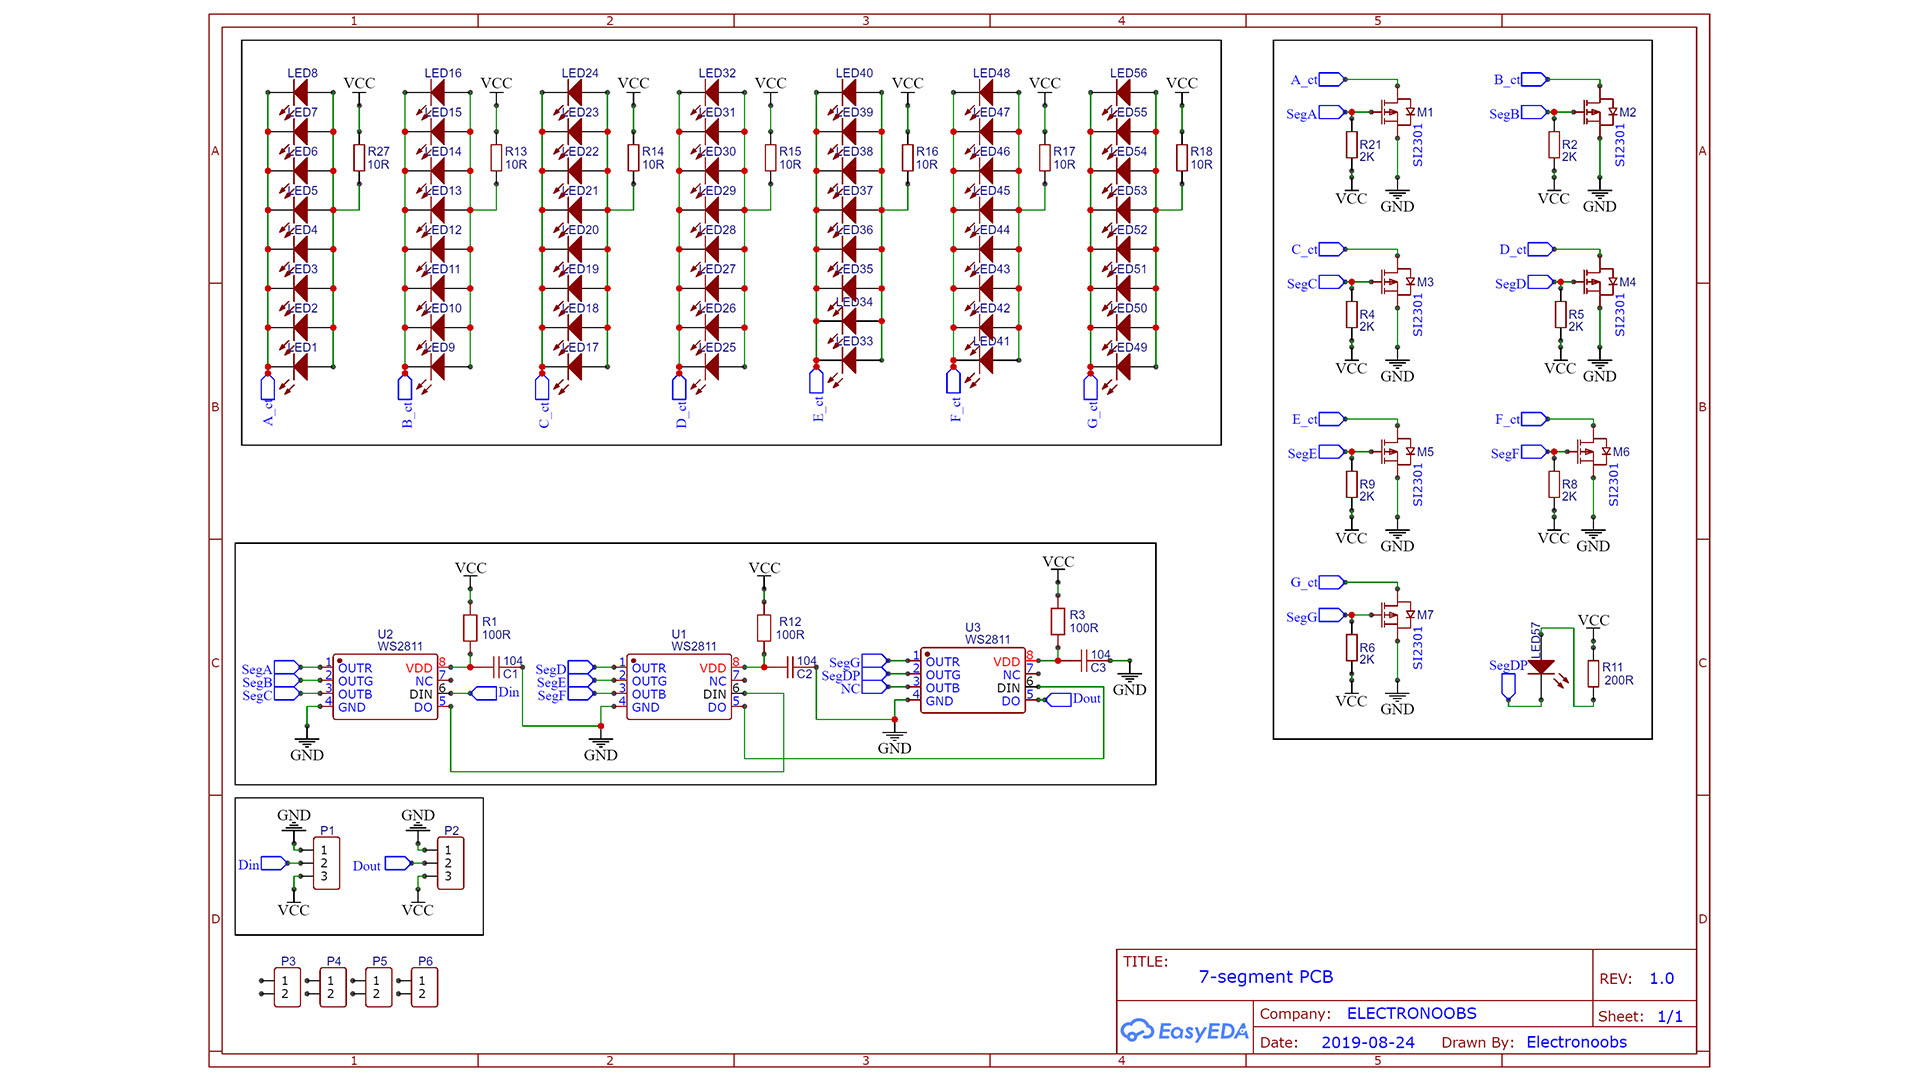 Arduino schematic 7 segment display DIY big LED